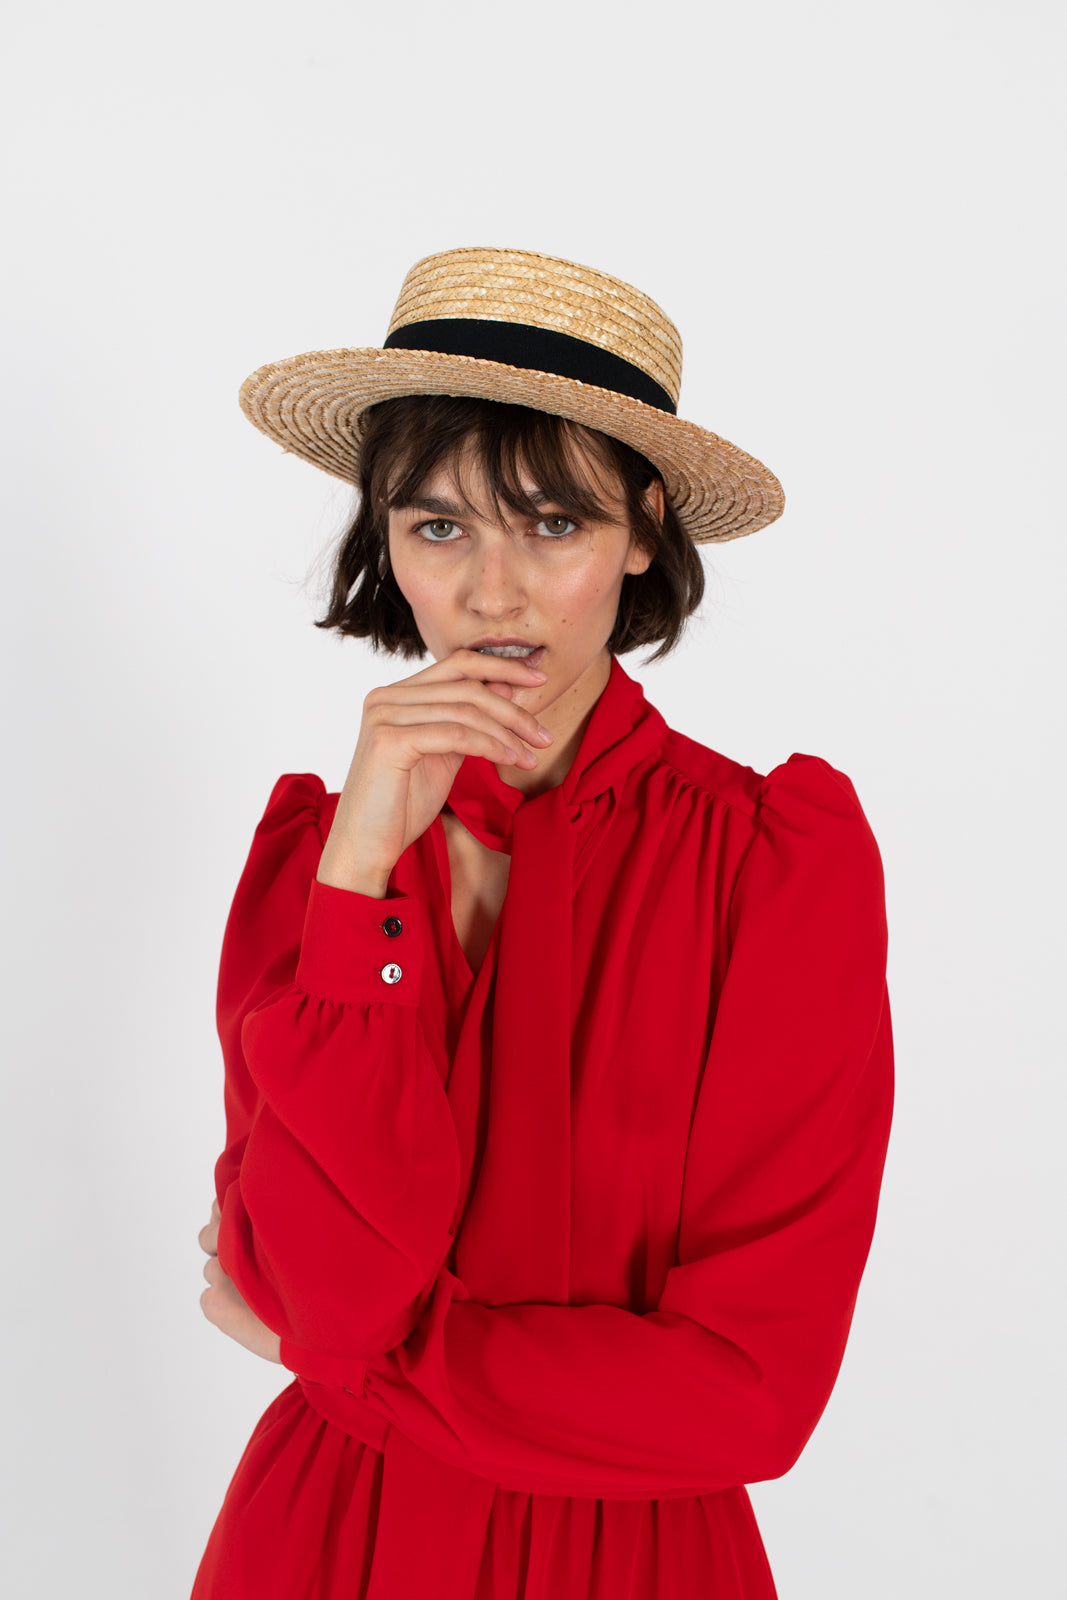 le-slap-statement-fashion-summer-dress-style-inspo-hat